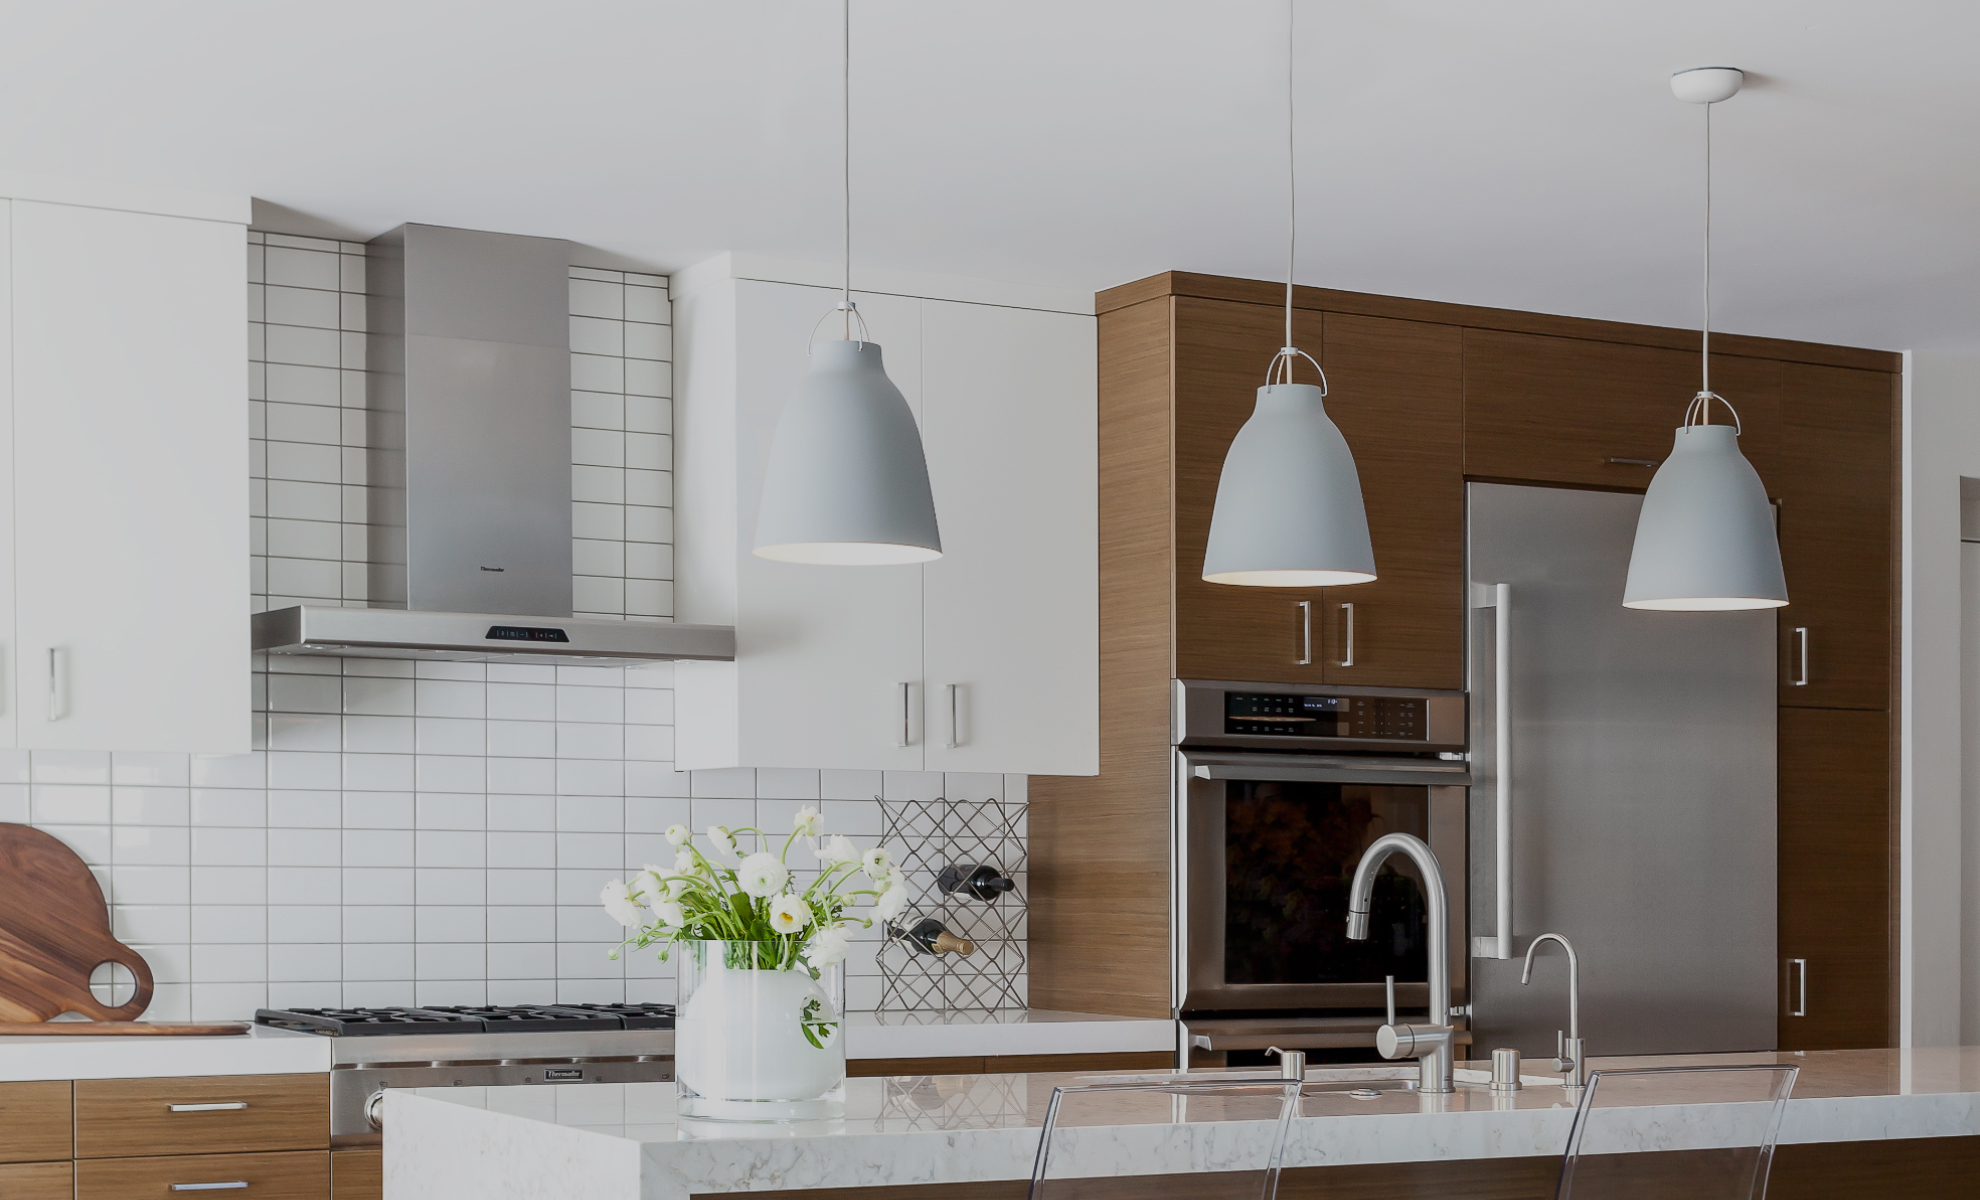 Pendant Lighting And The Diffe